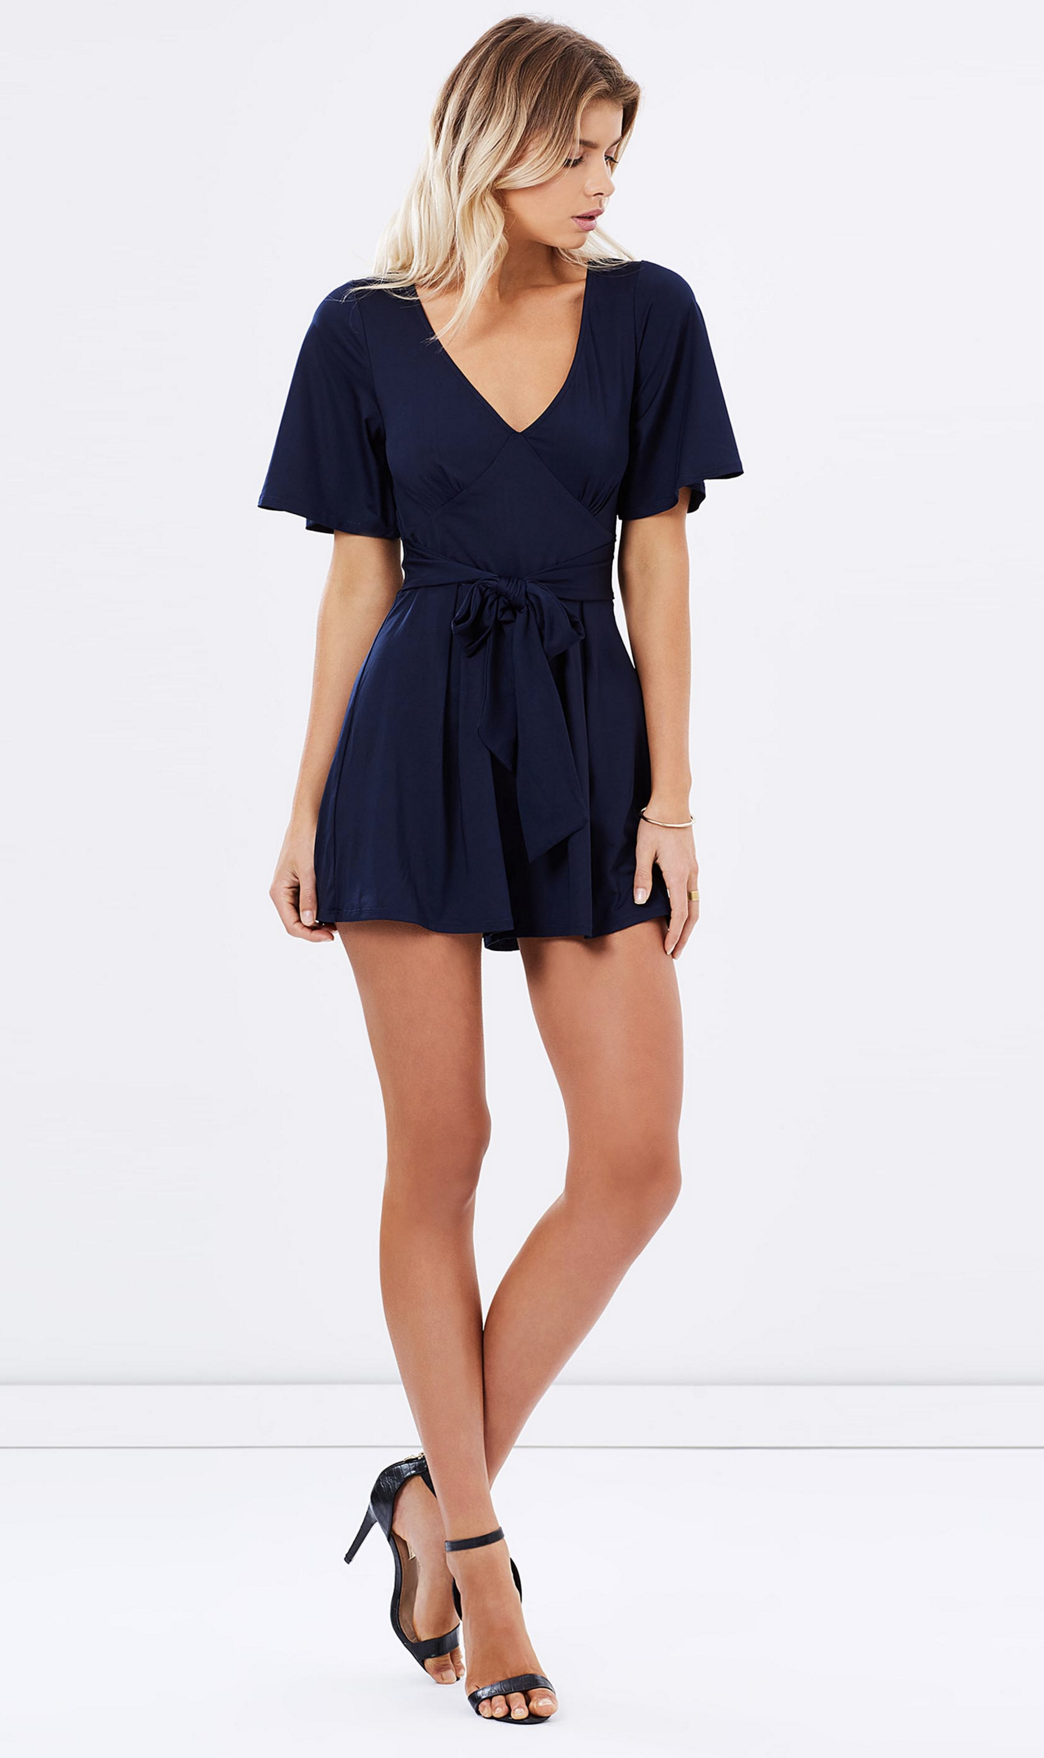 Atmos & Here take me out playsuit $49.95